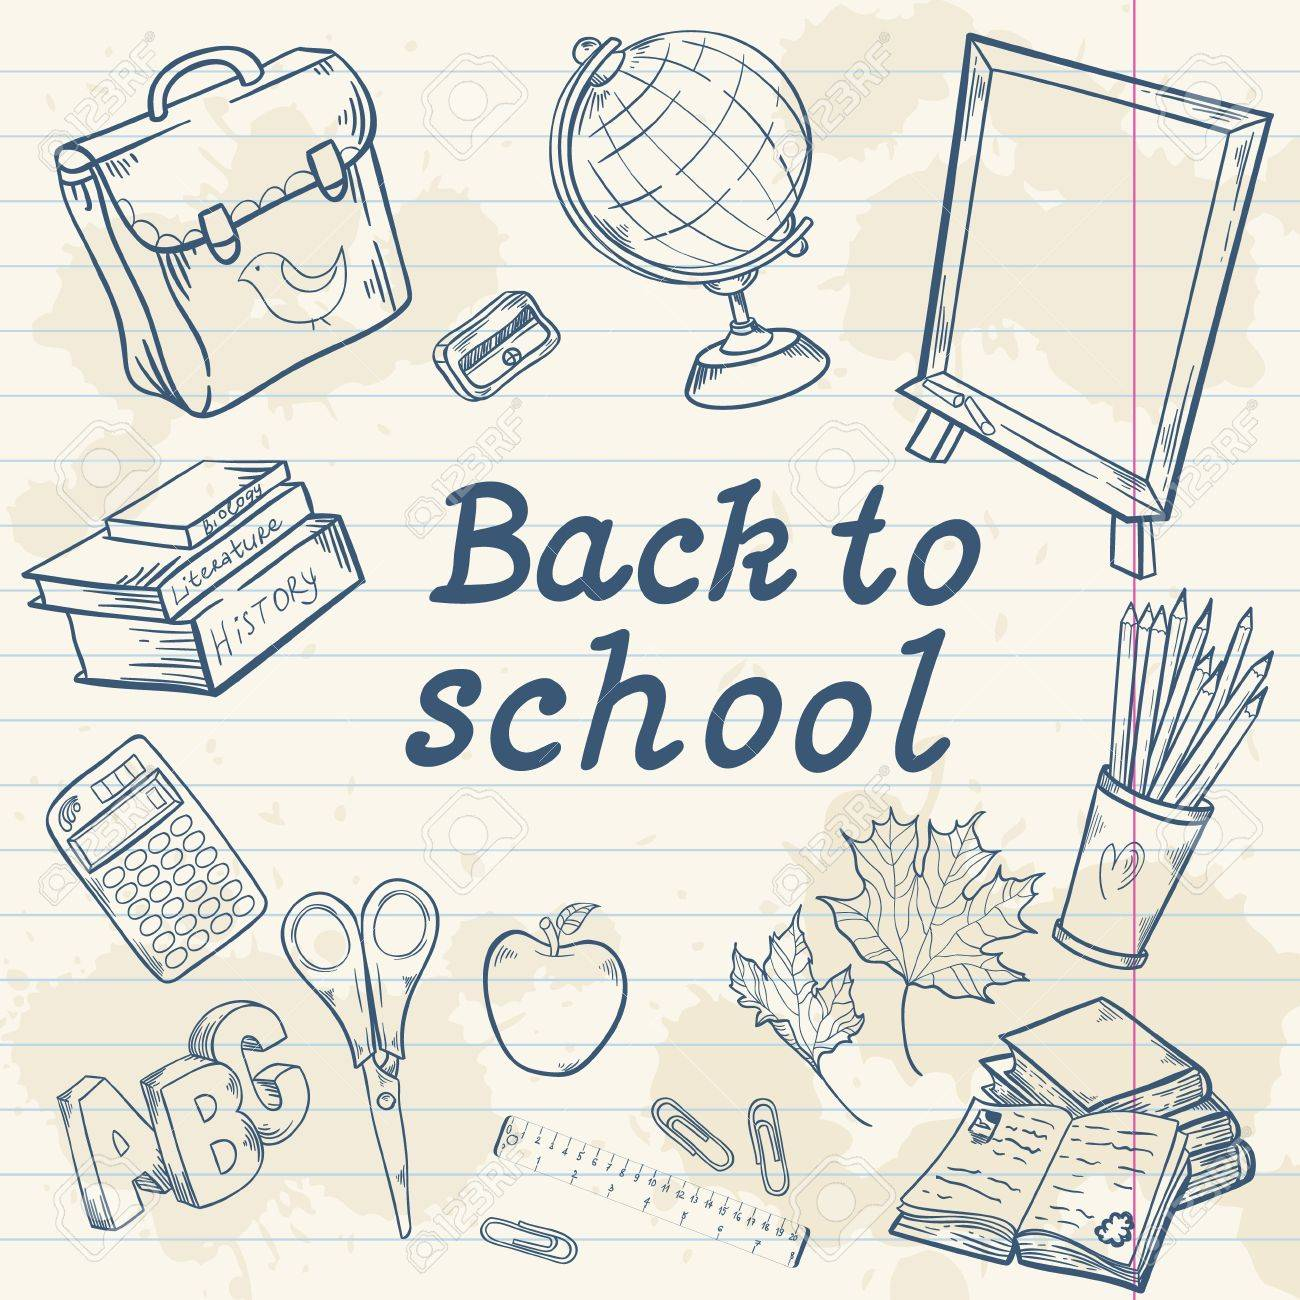 Back to school collection with various study items in cartoon hand drawn style - 21078431